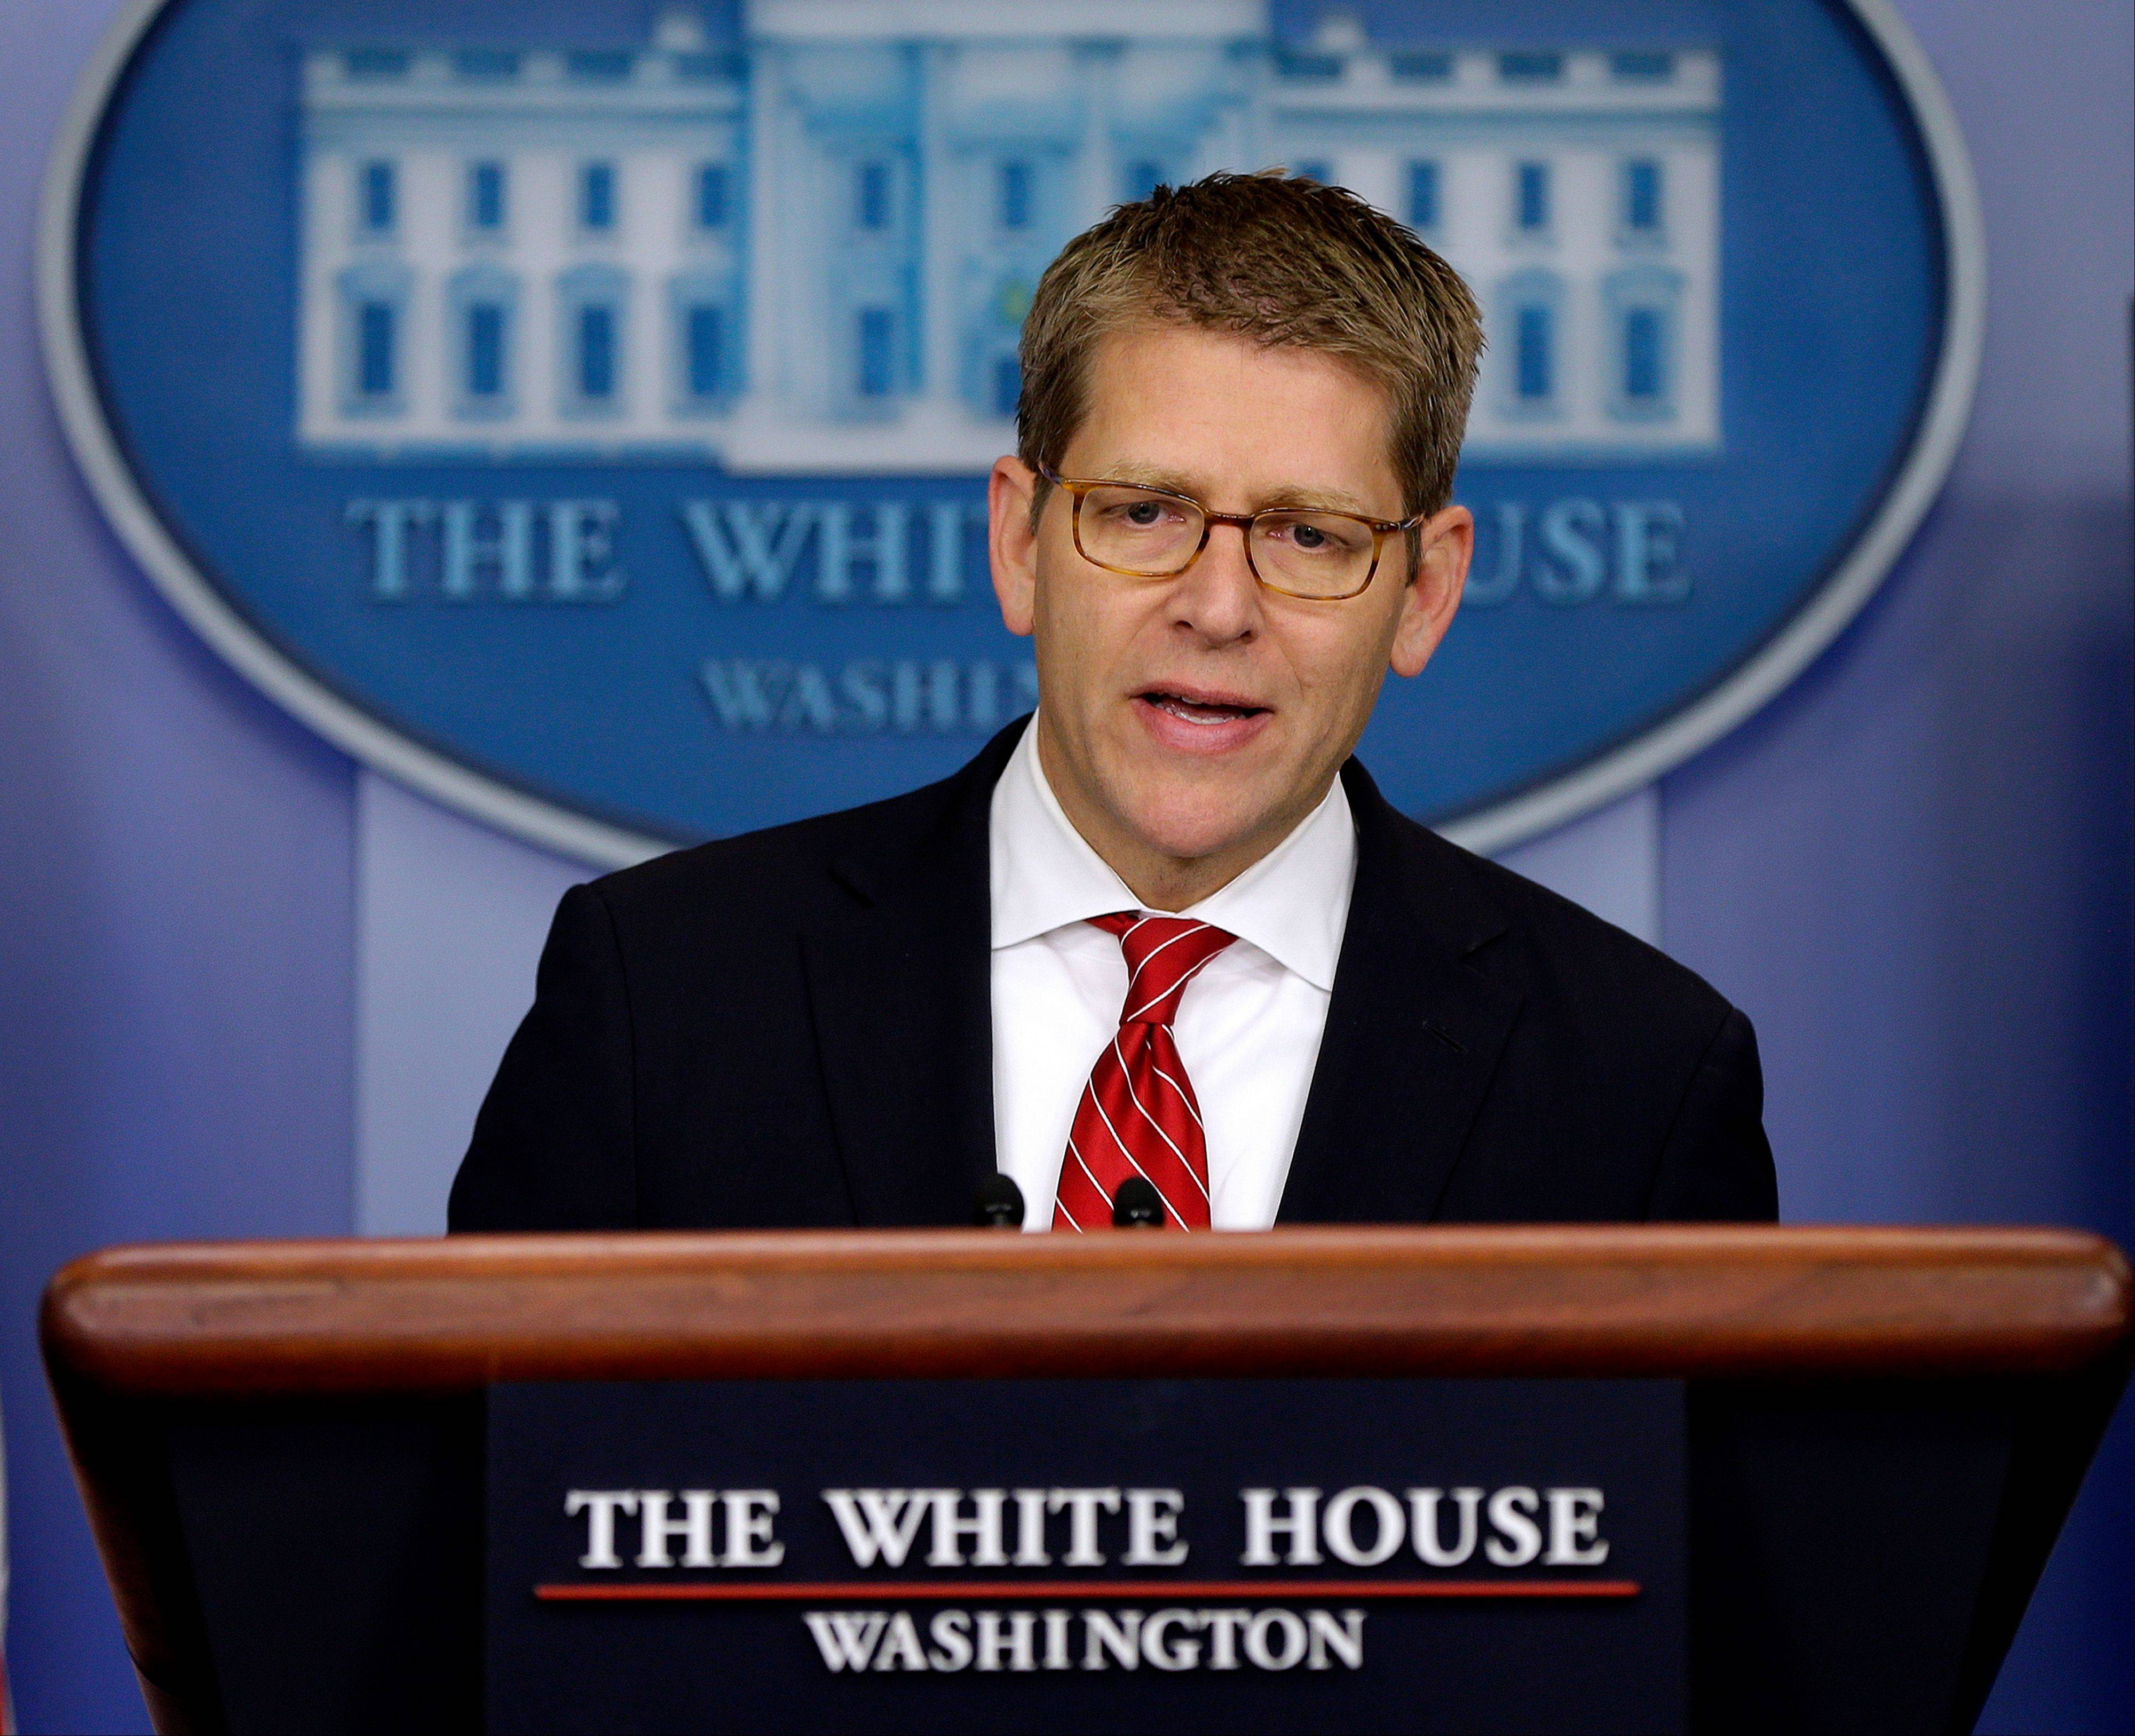 White House Press Secretary Jay Carney speaks Friday during his daily news briefing at the White House in Washington.